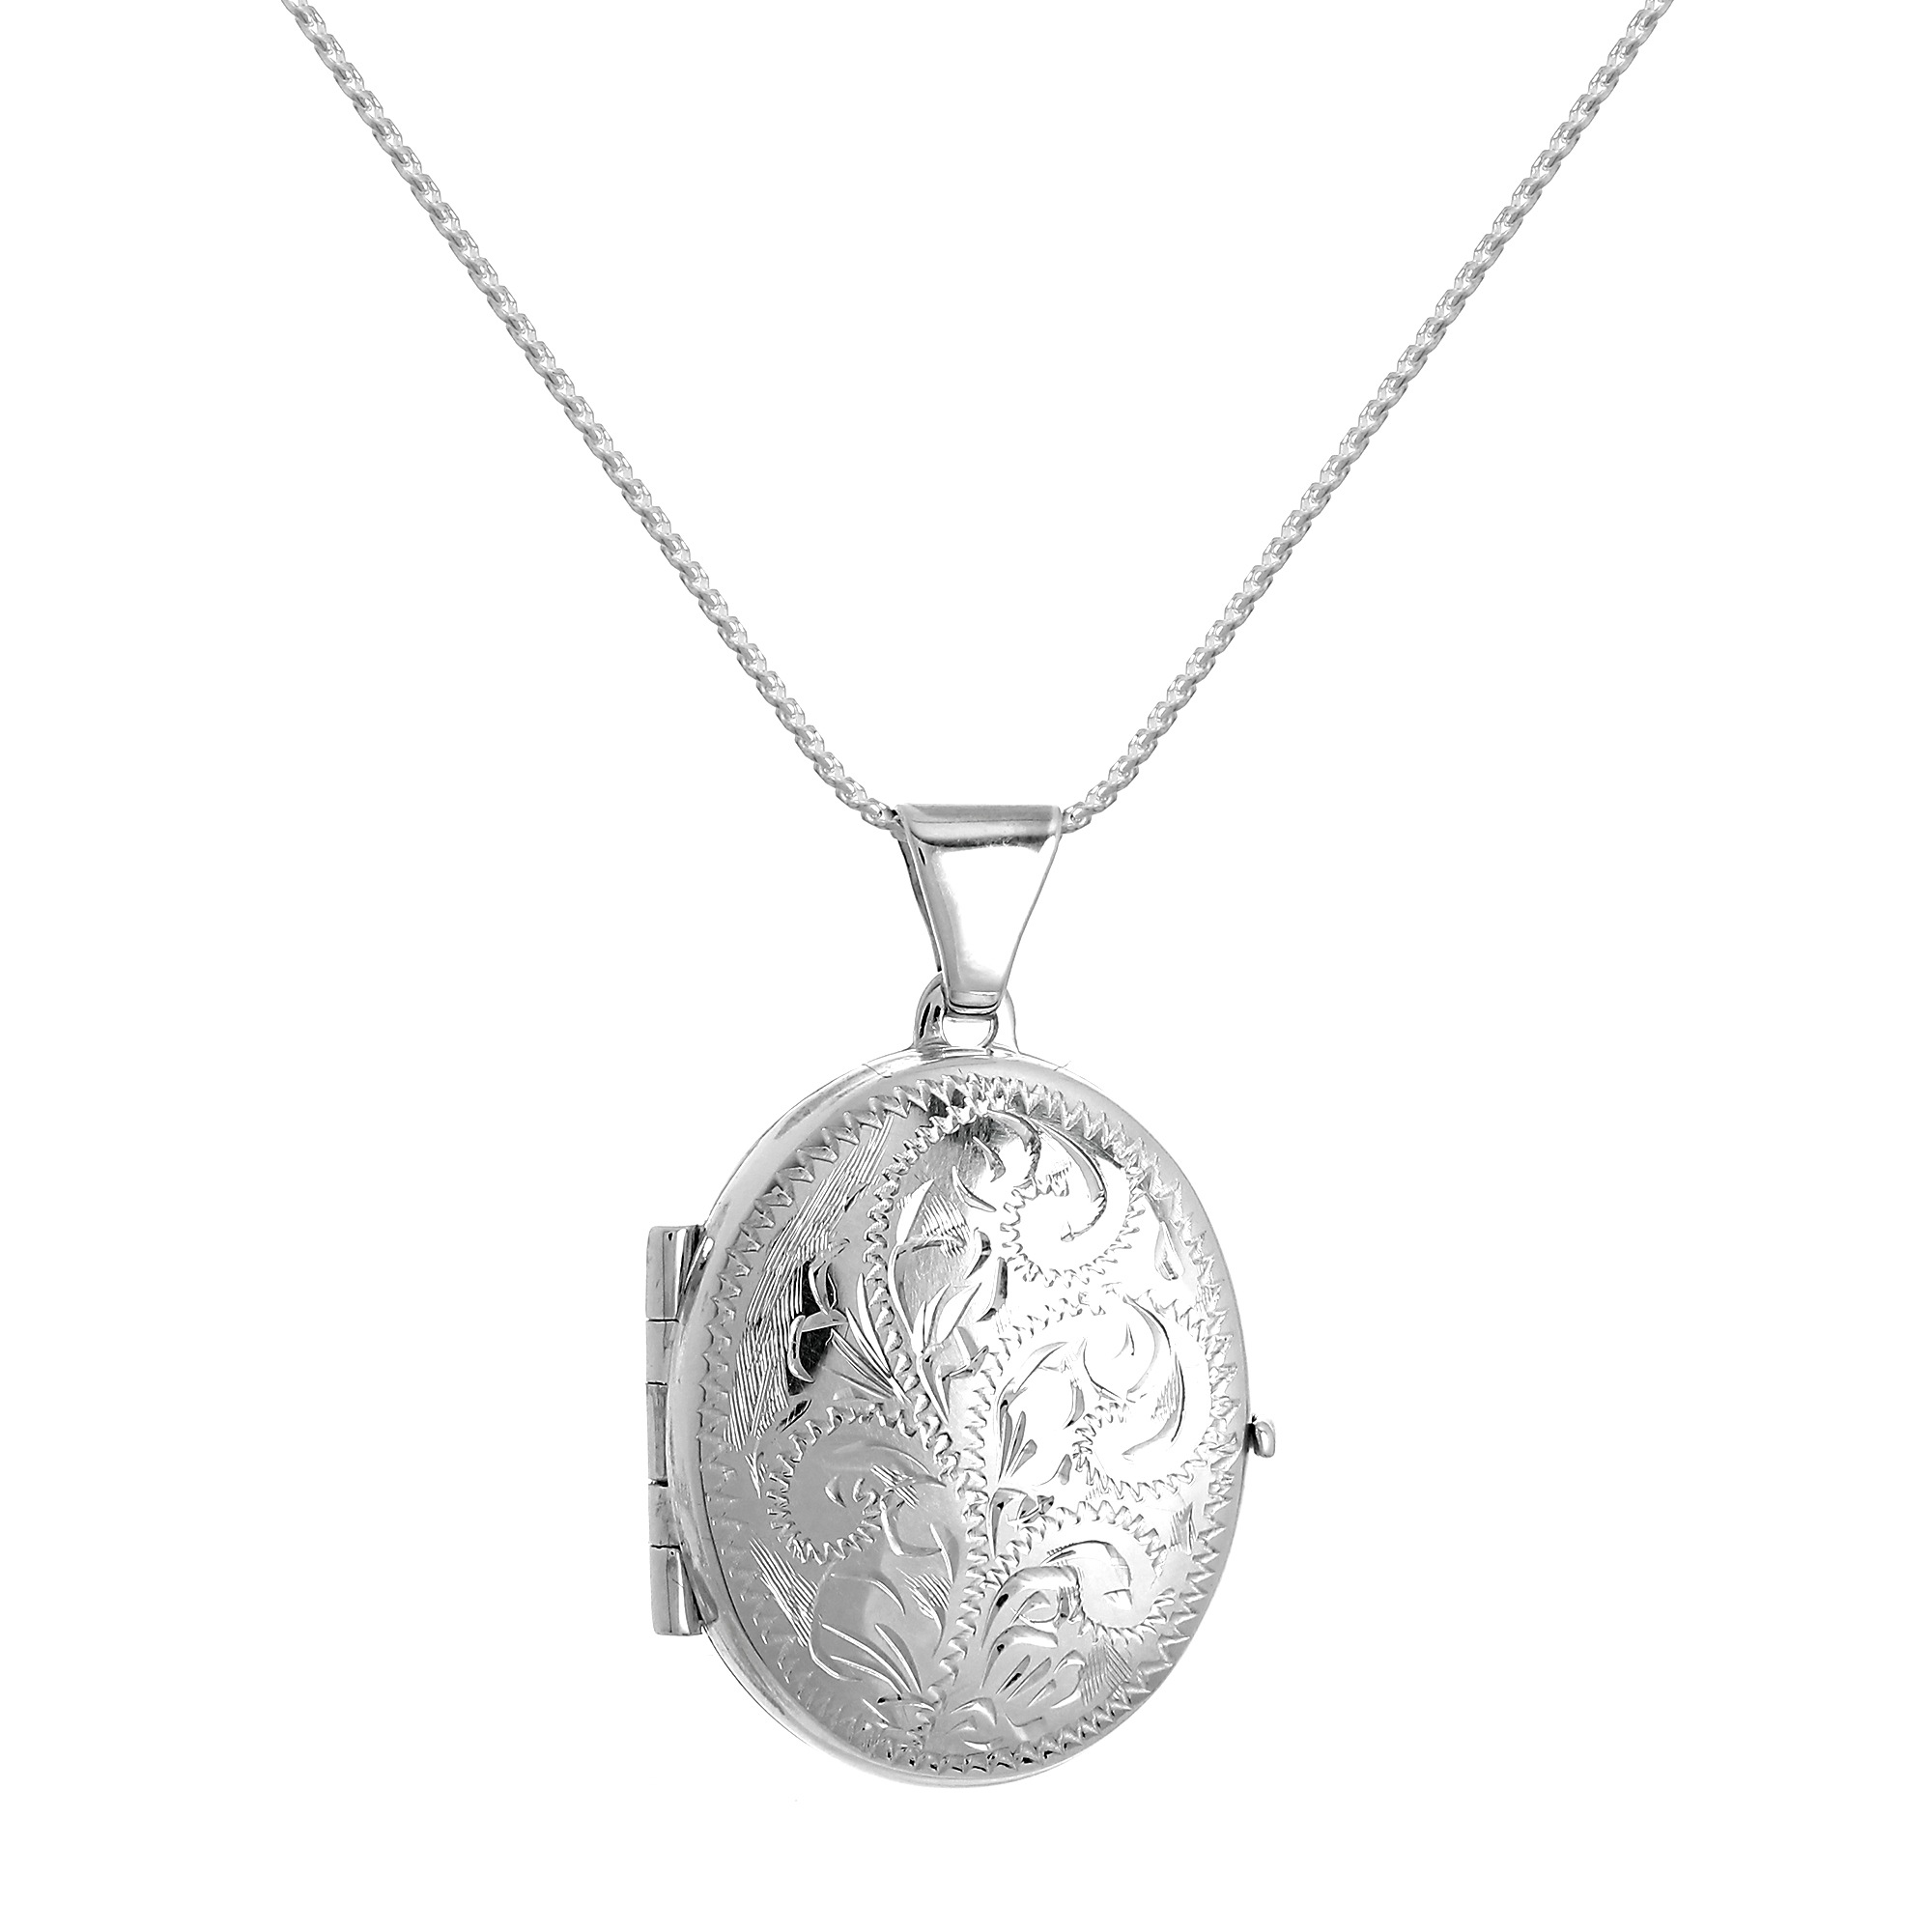 An image of Sterling Silver Engraved Oval 4 Photo Family Locket on Chain